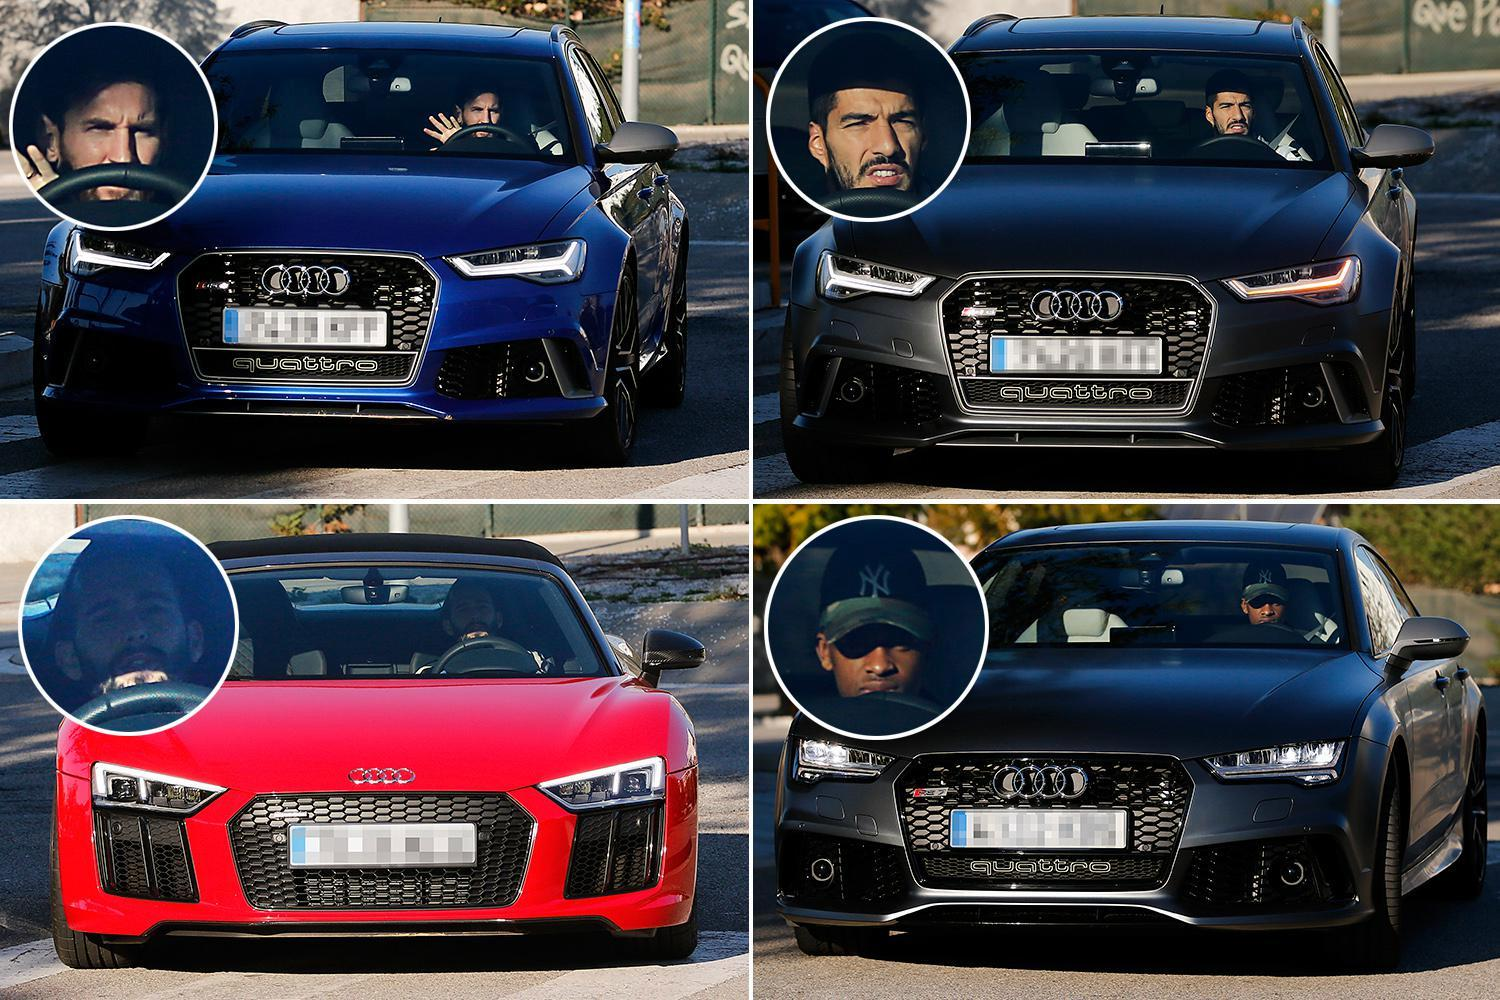 Lionel Messi New Expensive Car